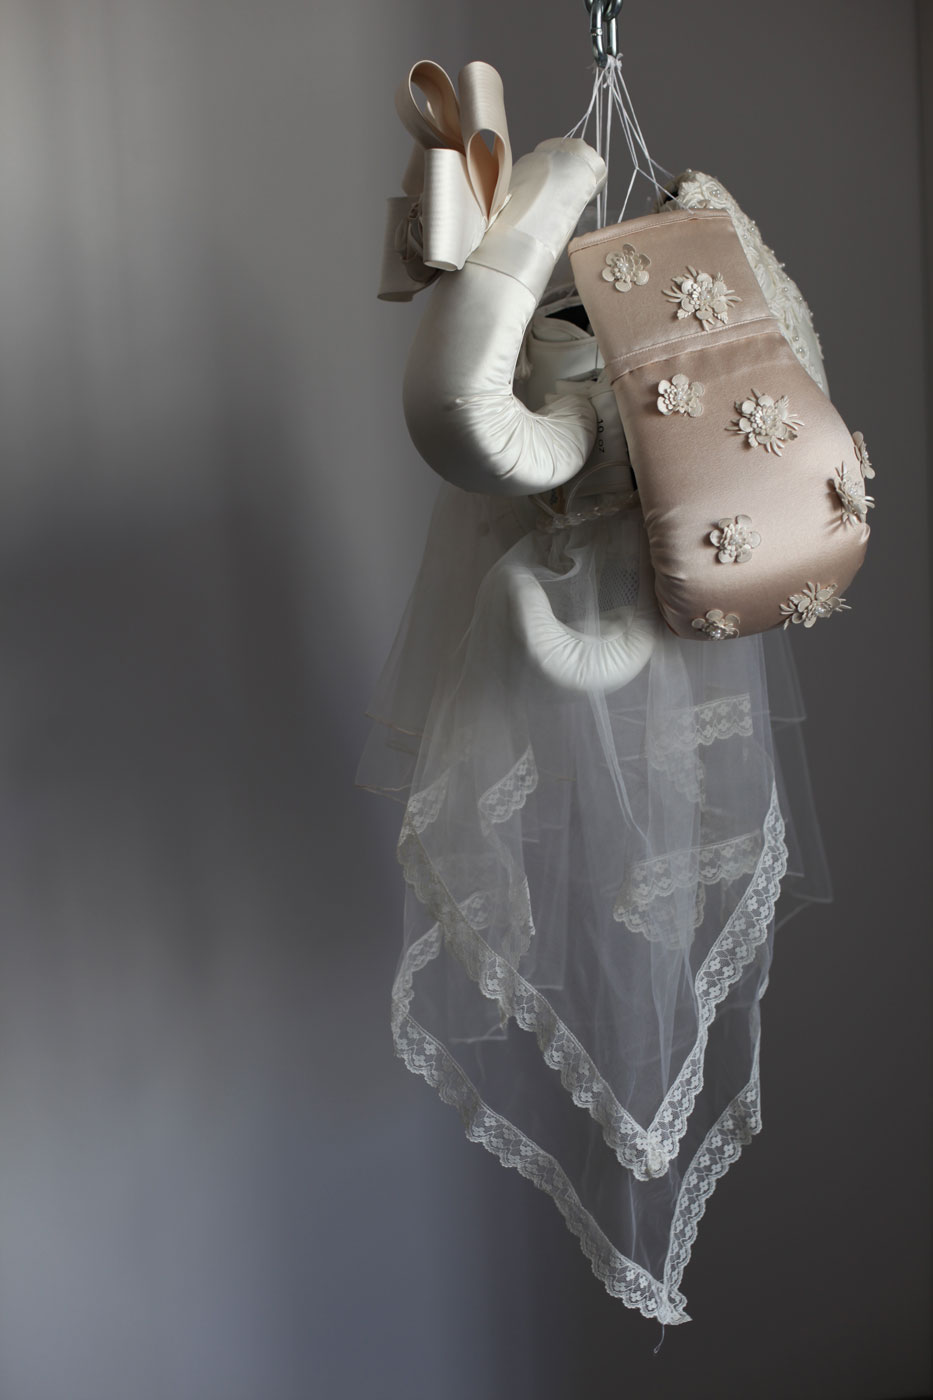 Wedding dresses cover boxing gloves in feminist sculpture